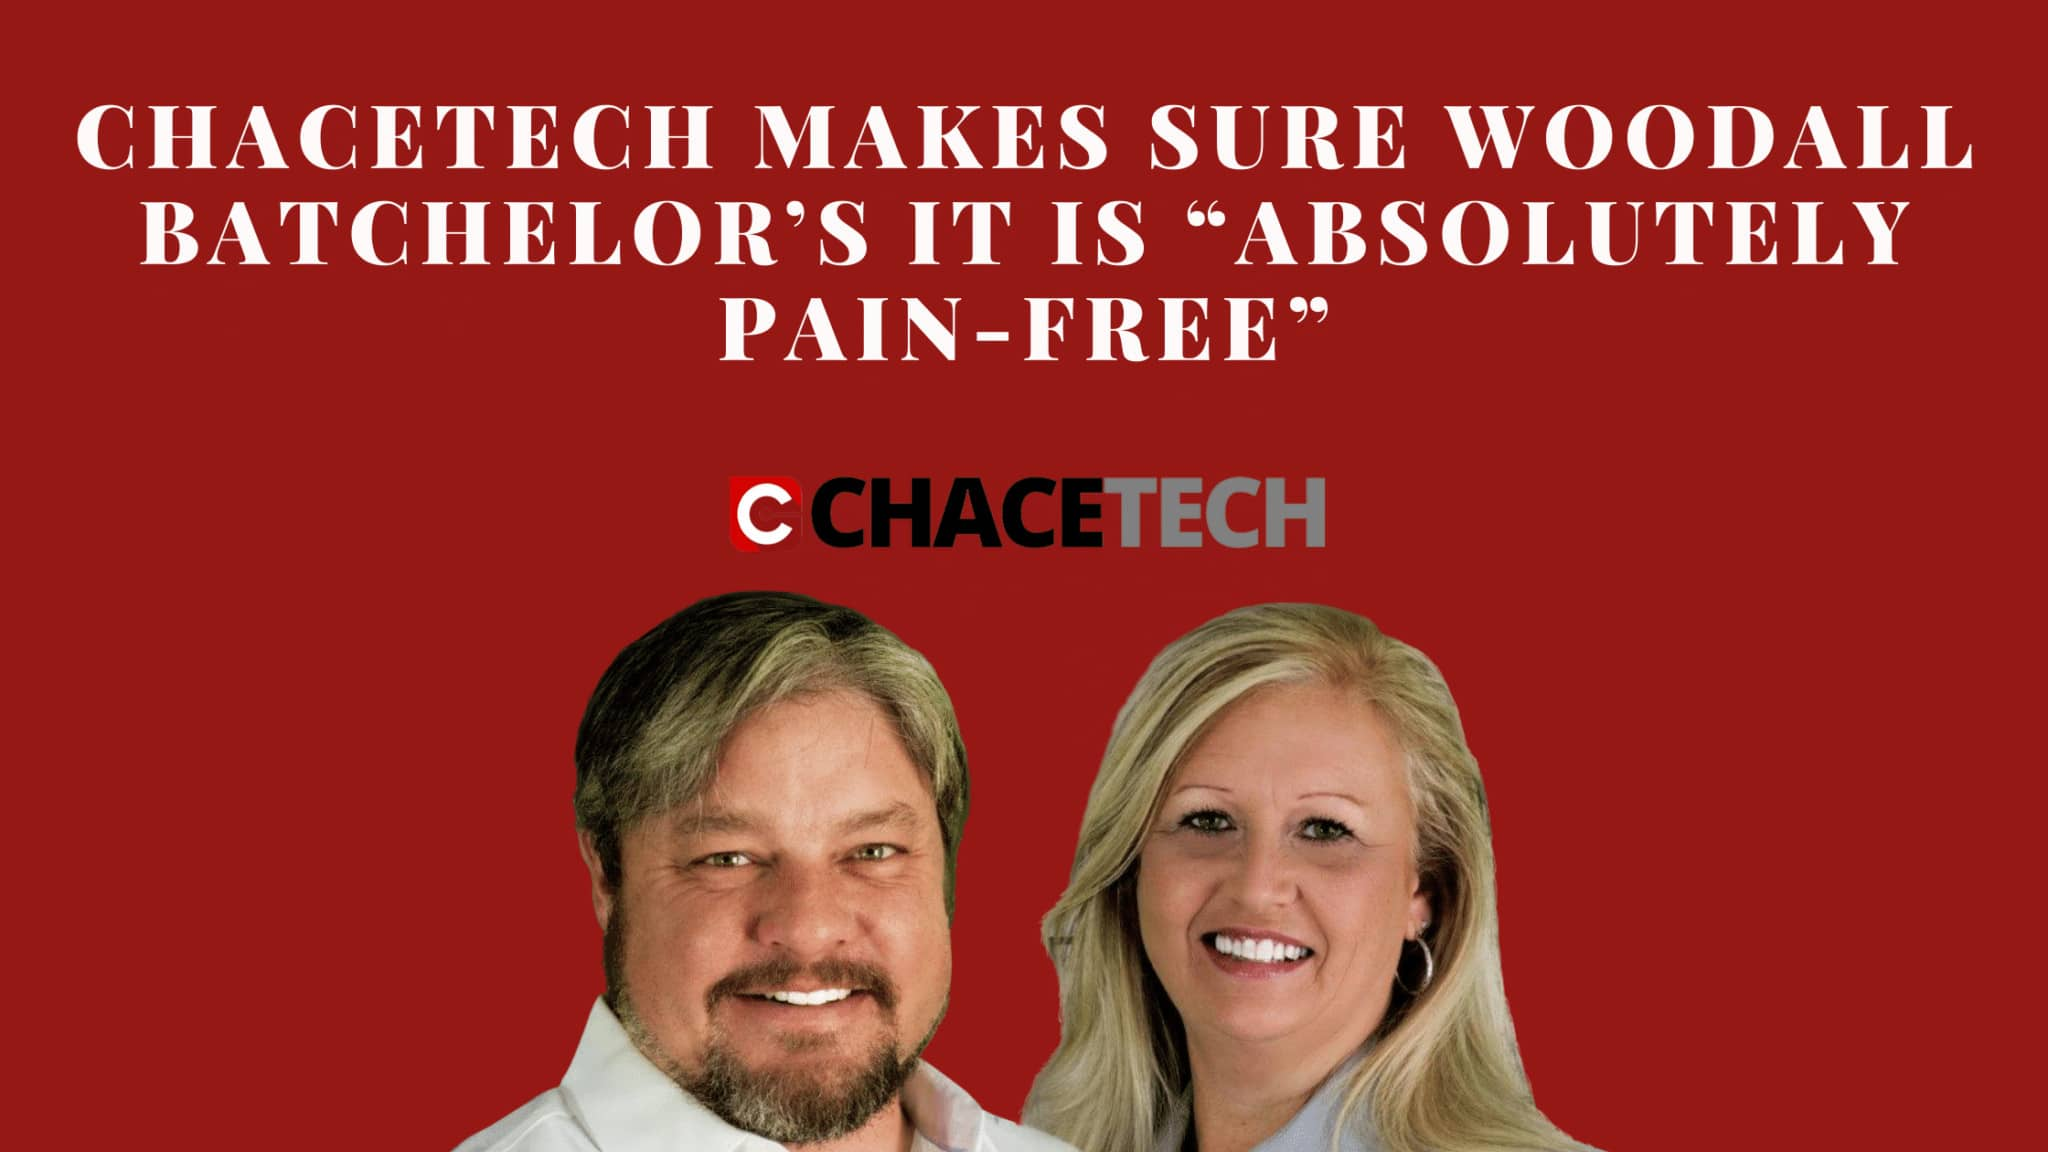 """ChaceTech Makes Sure Woodall Batchelor's IT Is """"Absolutely Pain-Free"""""""